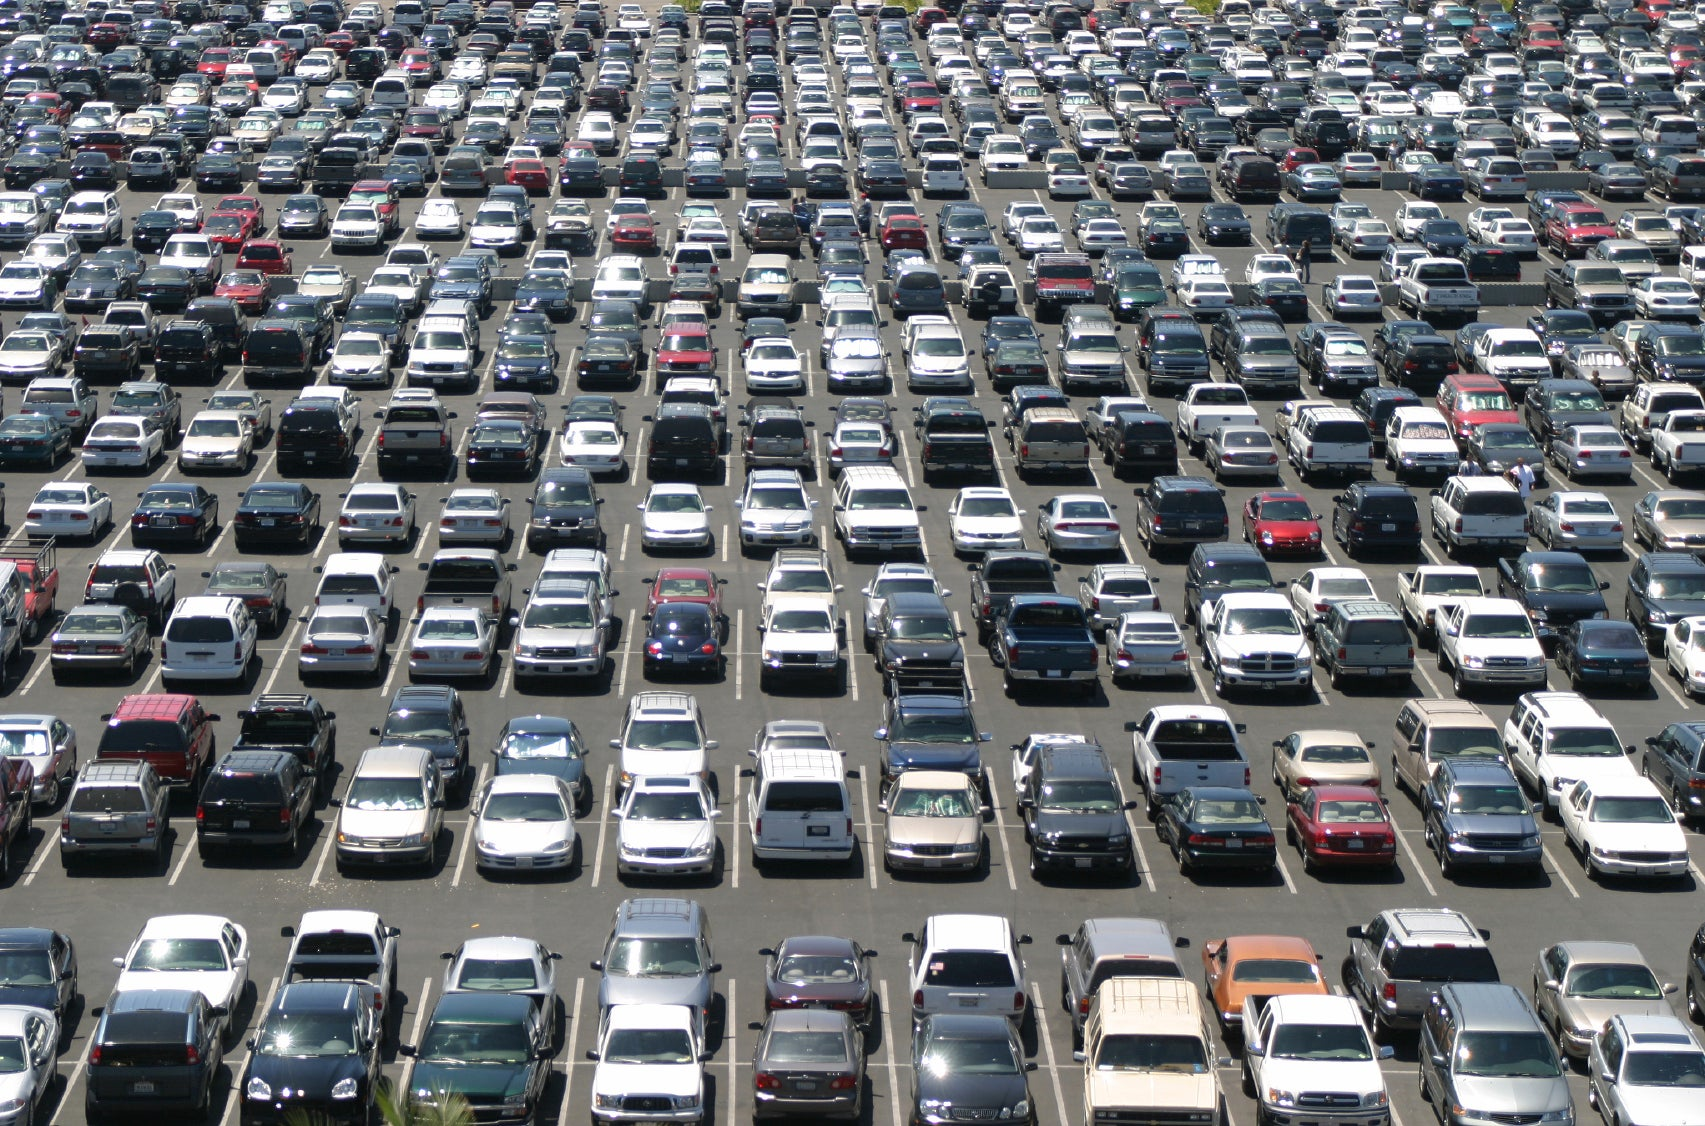 Full Parking Lot.jpg